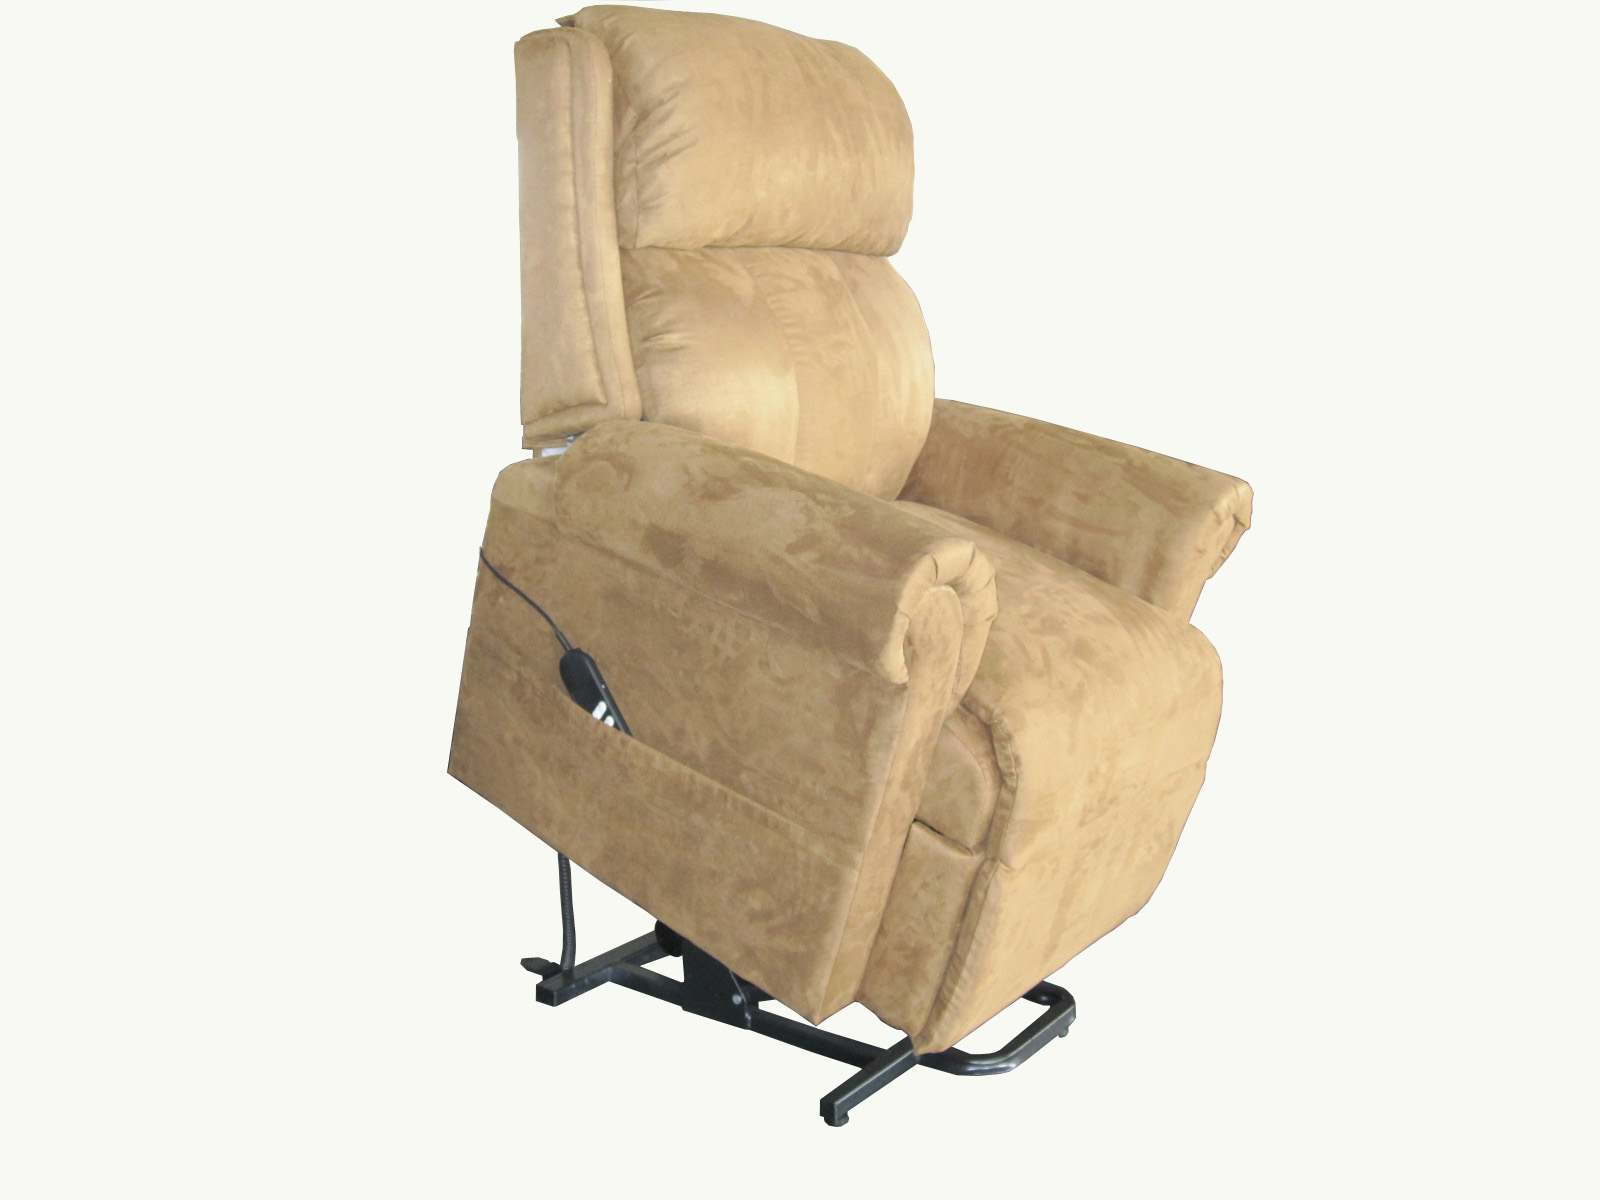 cream power lift recliners with arms for living room furniture ideas